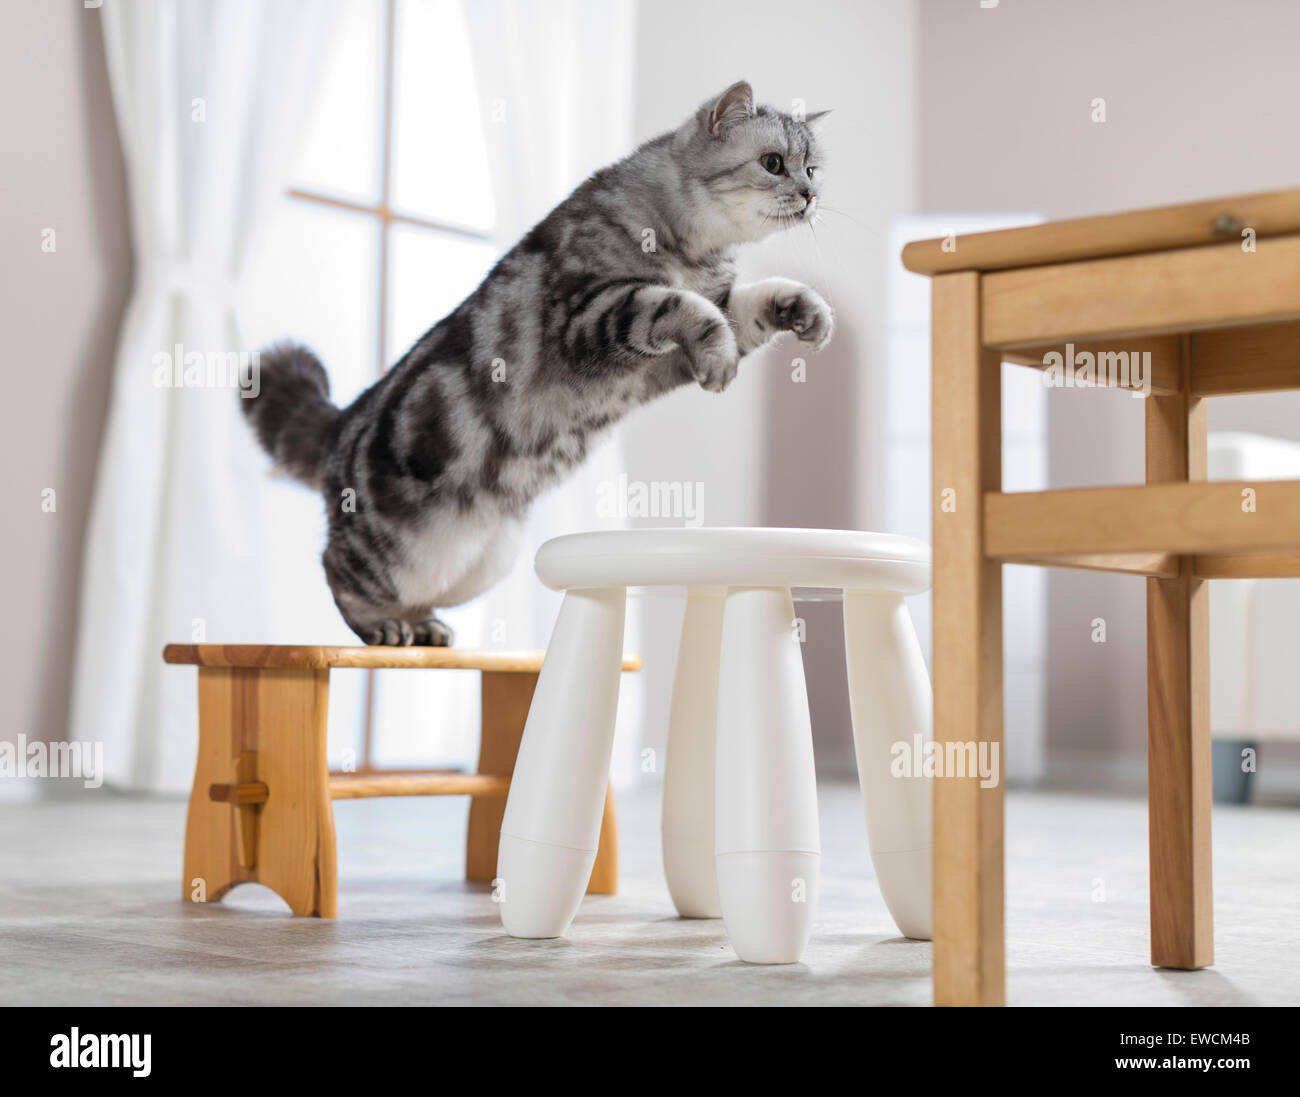 British Shorthair. Adult jumping from a footstool to a stool. Clicker training. Germany - Stock Image